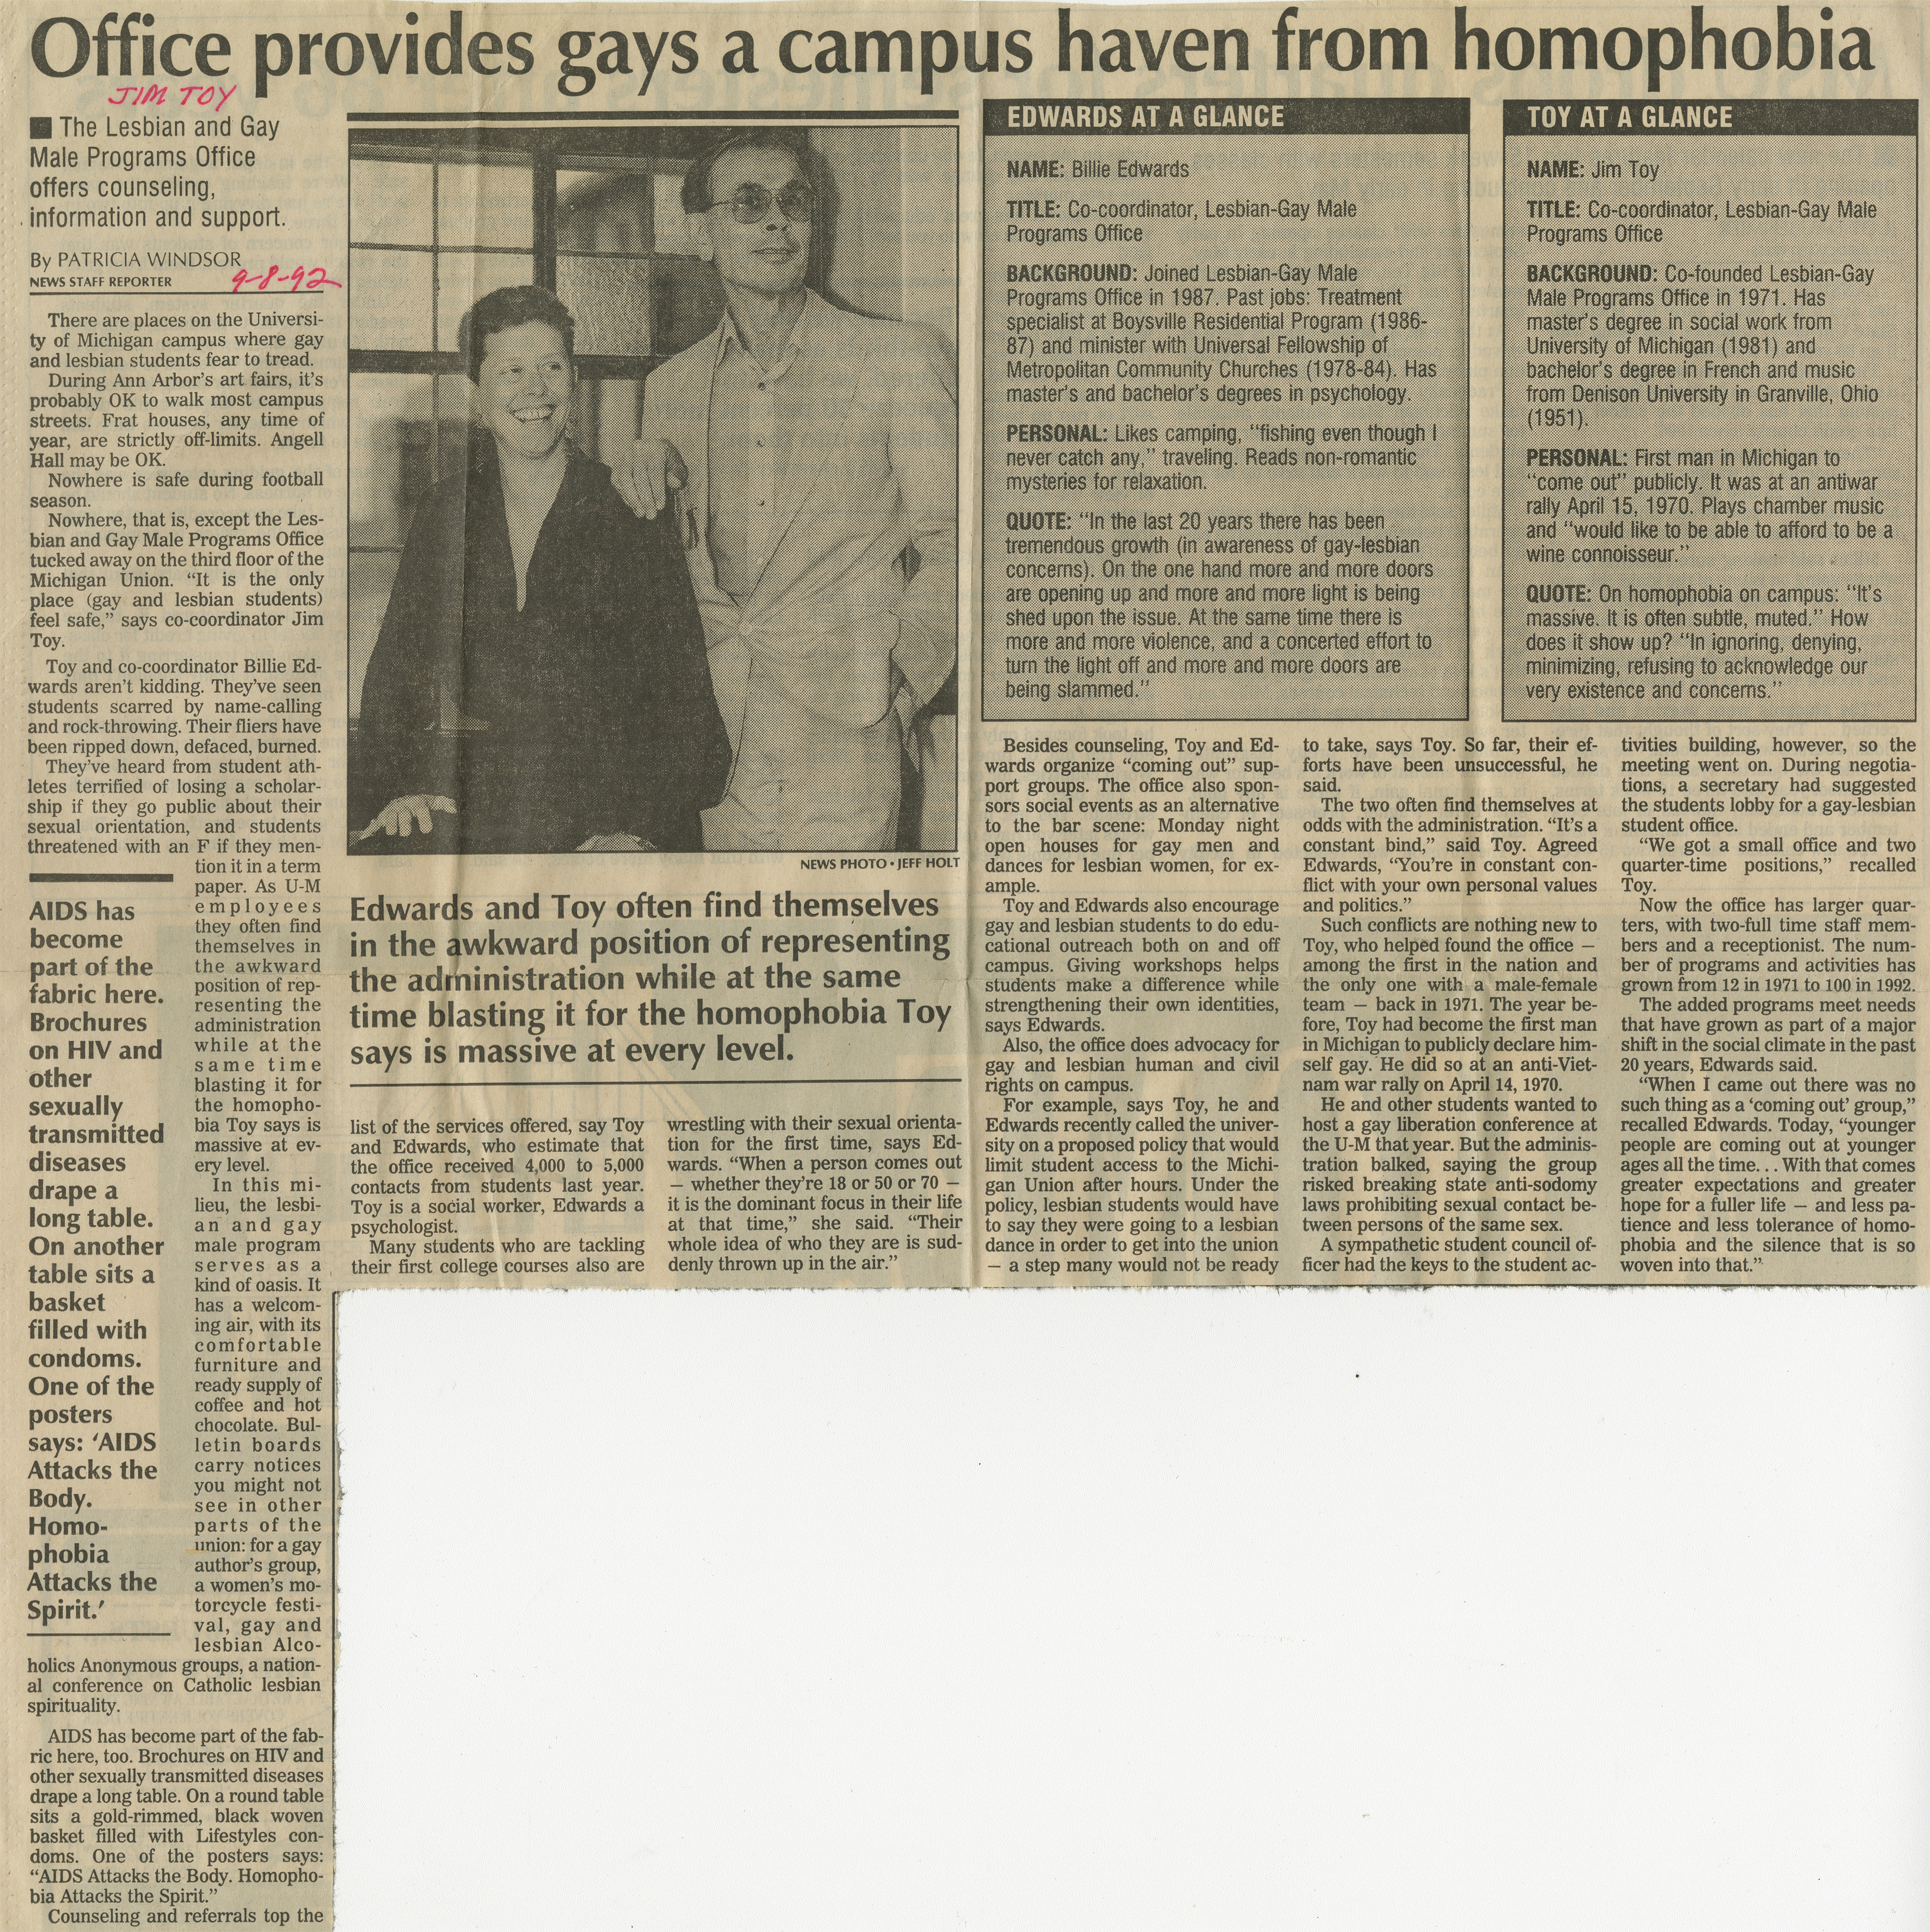 Office provides gays a campus haven from homophobia image